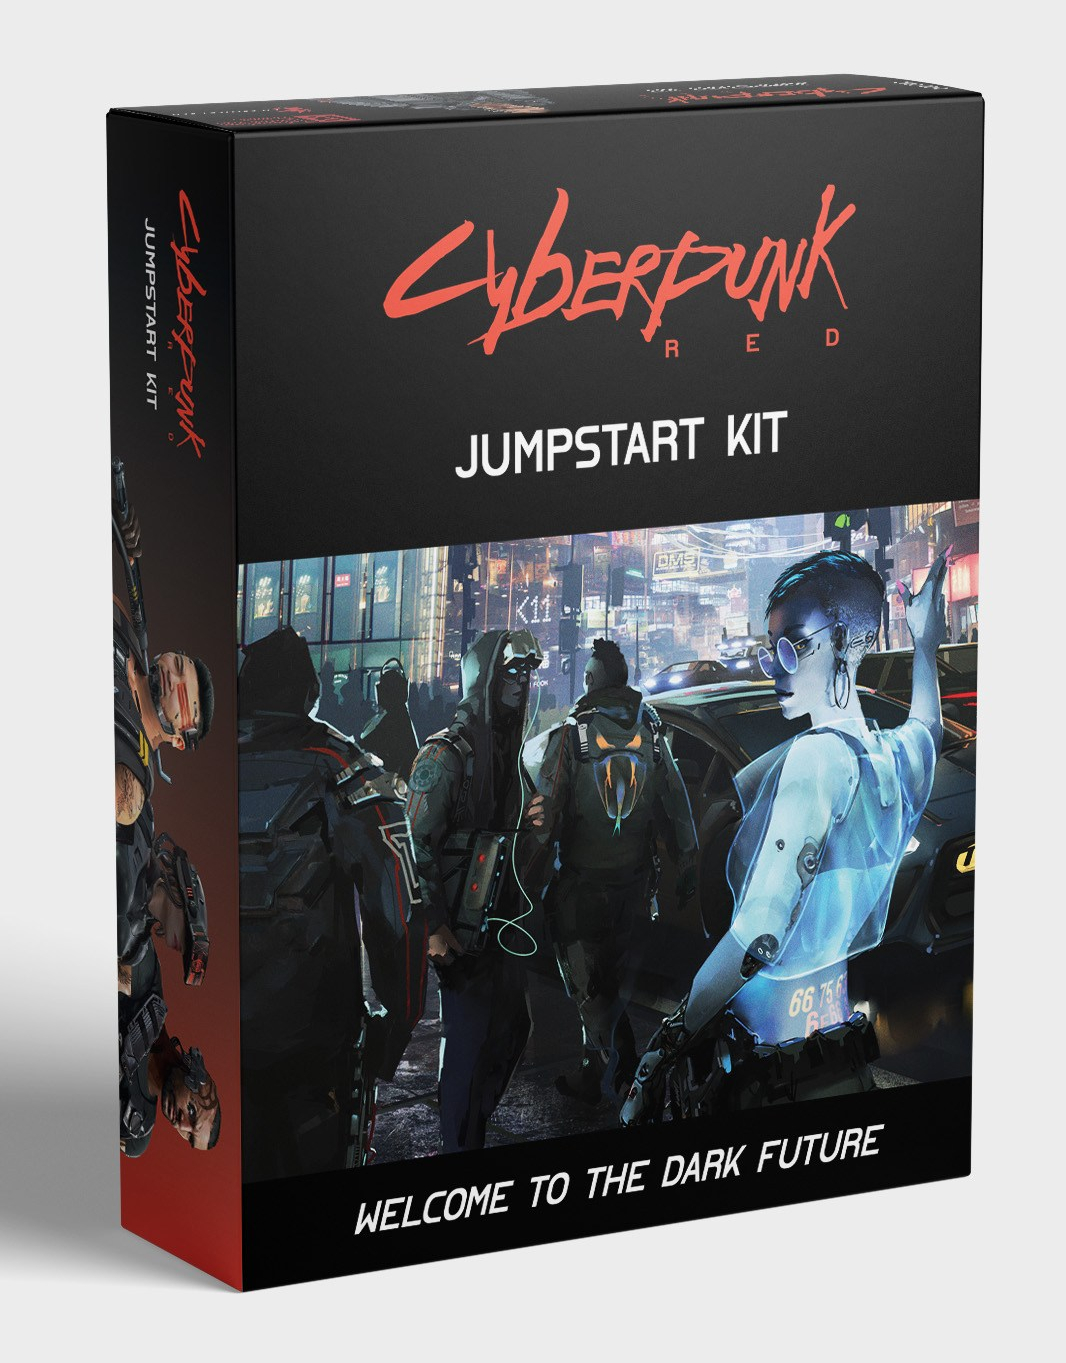 The Cyberpunk RED Jumpstart Kit box